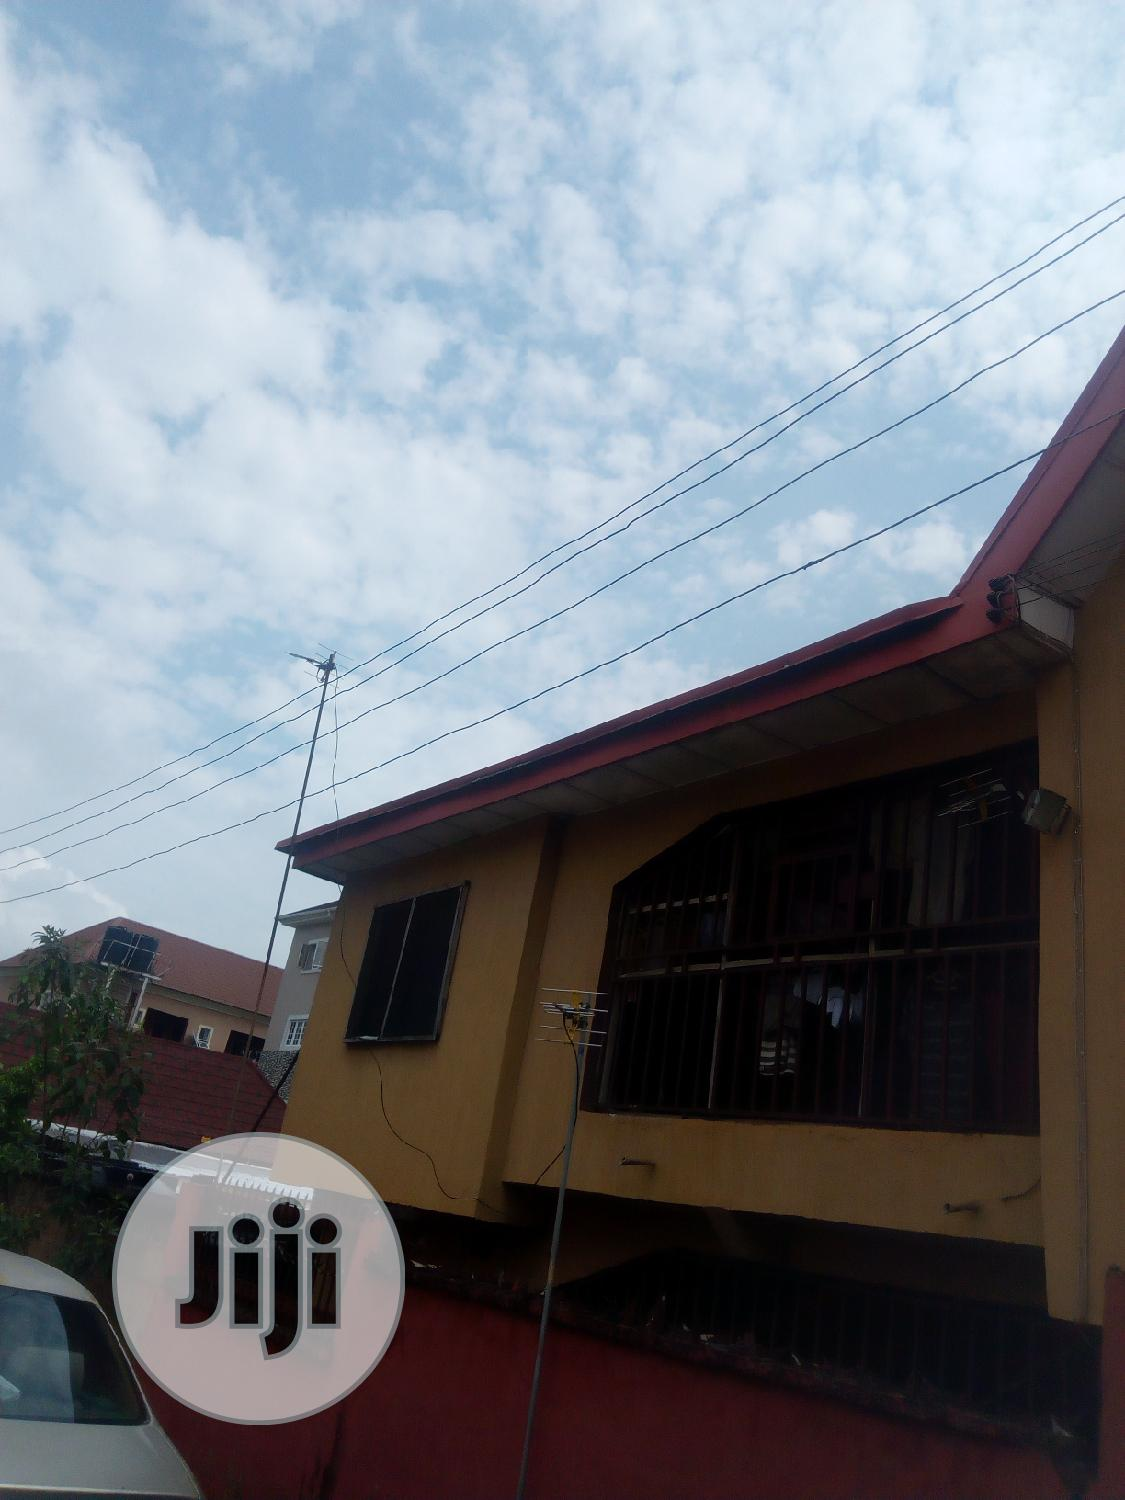 4 Flat One Story Bilding For Sale At Kwata Juctiion Awka | Houses & Apartments For Sale for sale in Awka, Anambra State, Nigeria